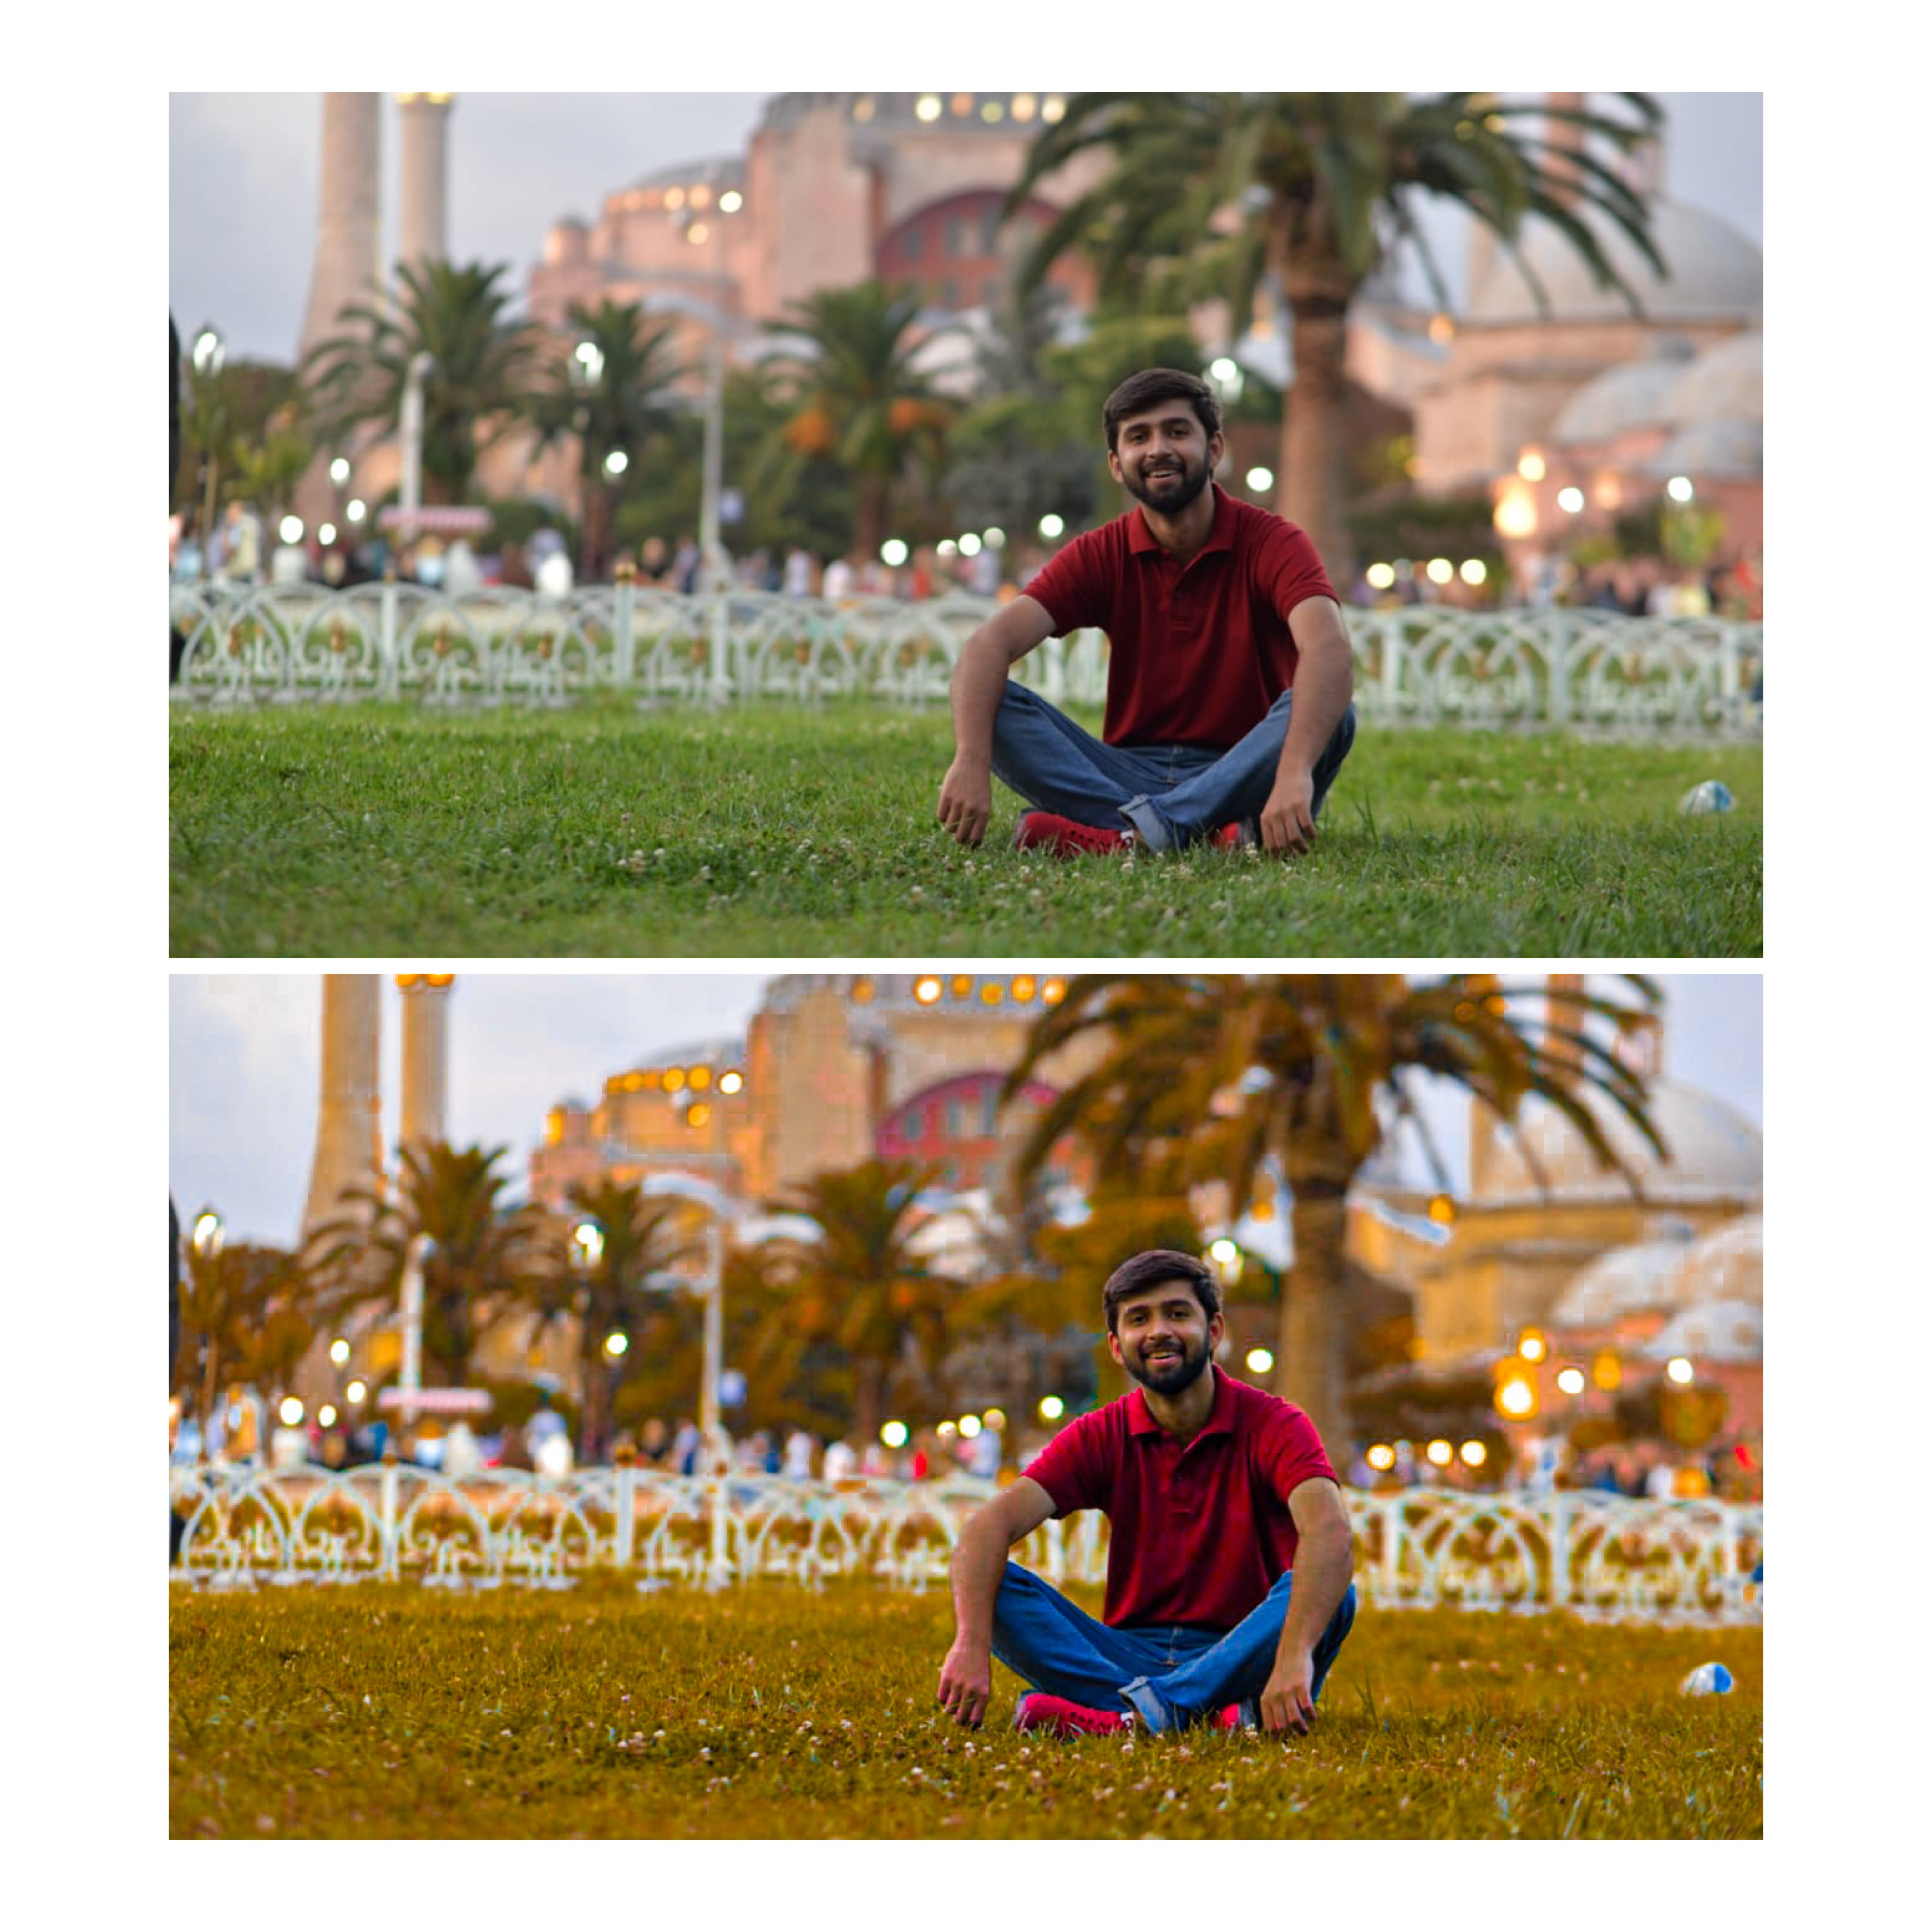 Edit pictures on Adobe Photoshop and Lightroom for Instagram and color correction